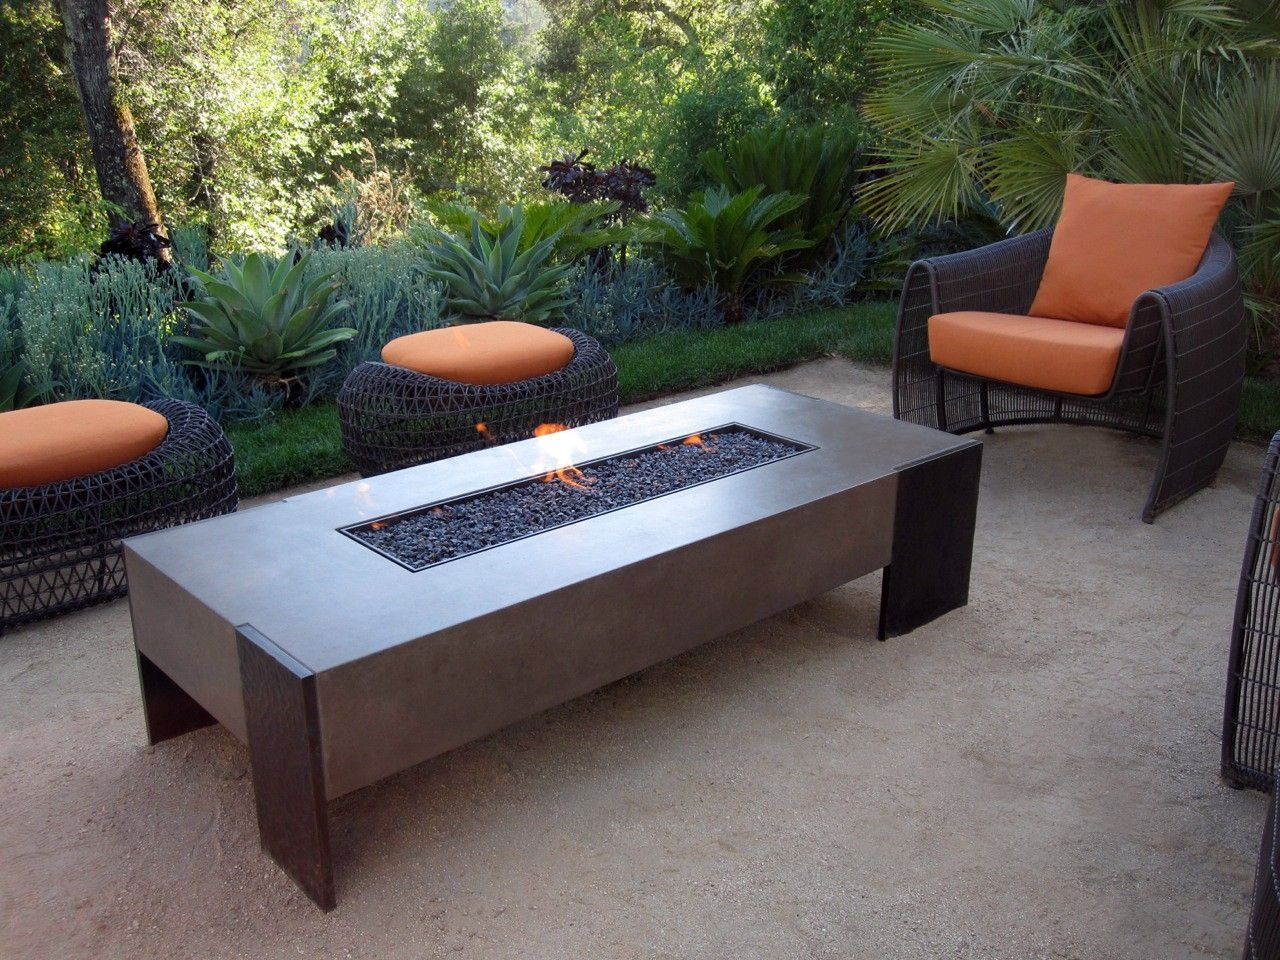 Handmade tam firetable by concreteworks for Concreteworks fire table